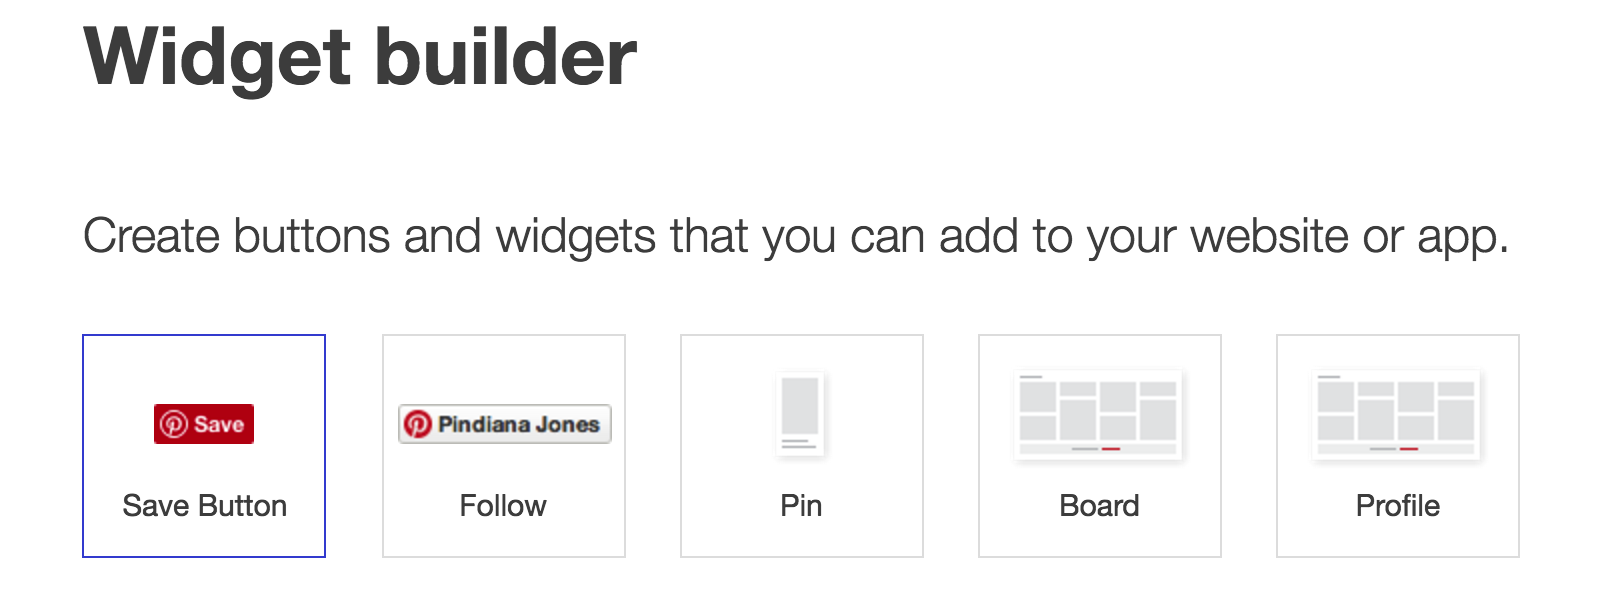 pinterest widget builder